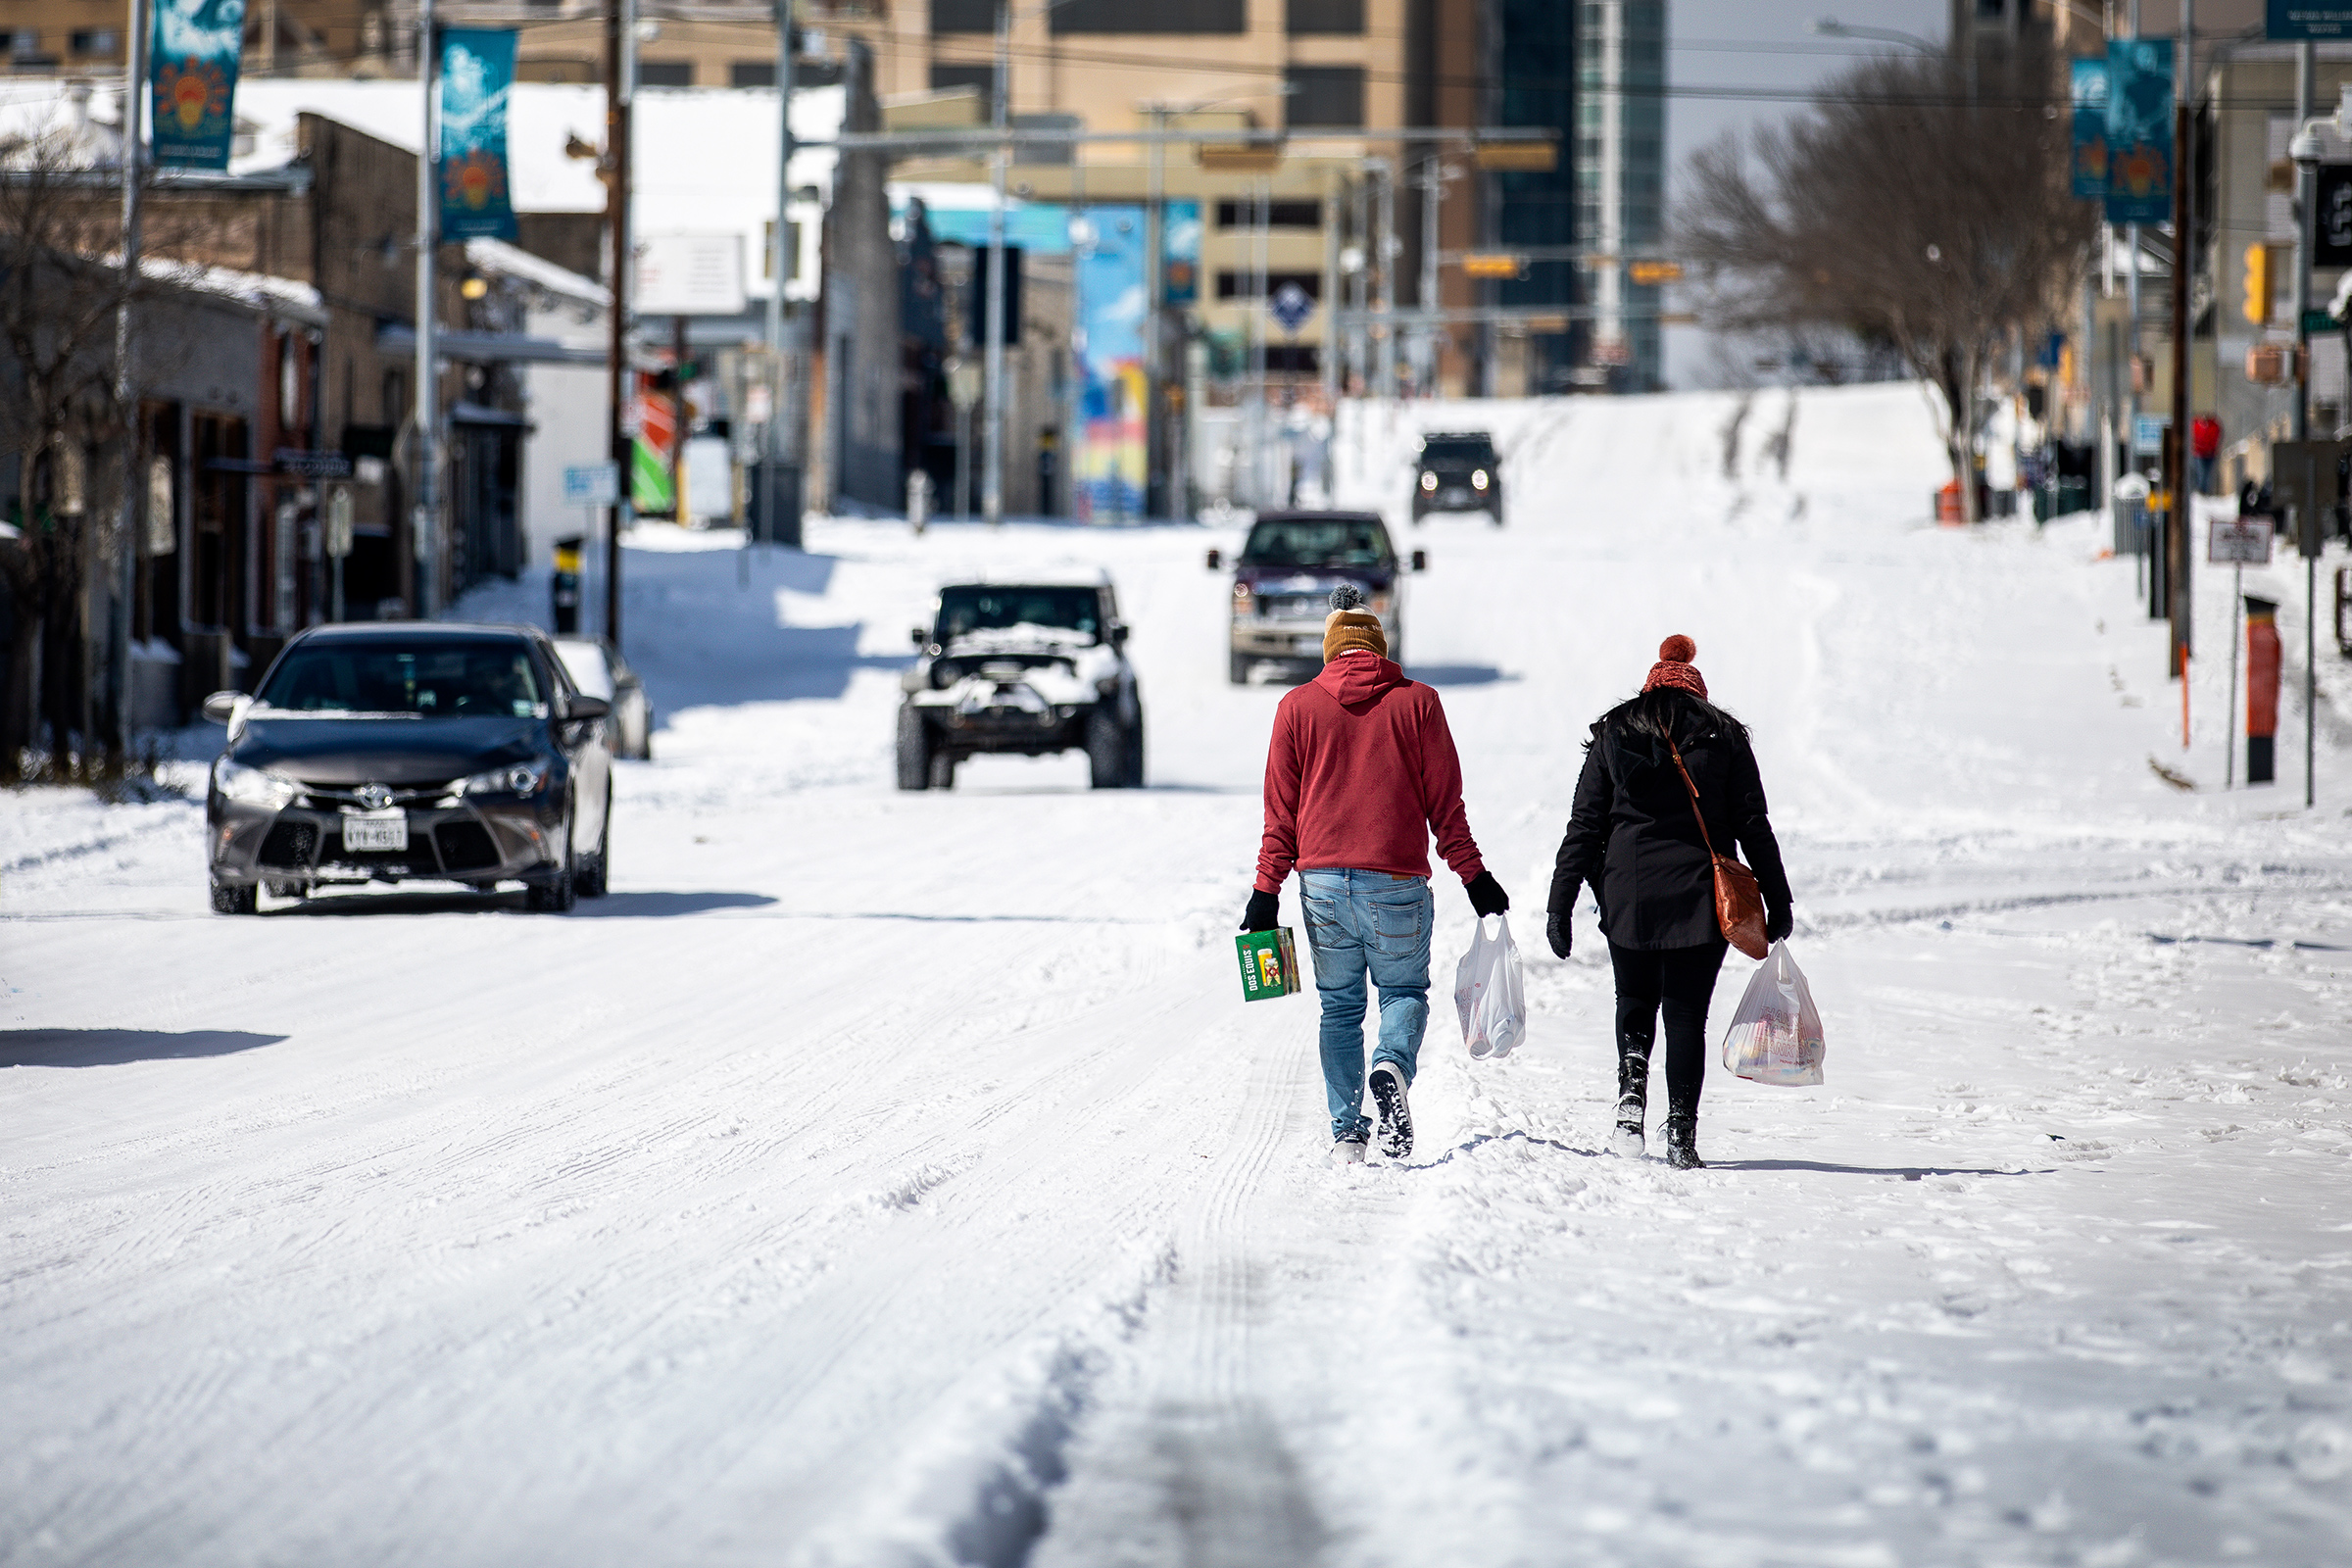 People carry groceries on Feb.15 in Austin after a winter storm brought historic cold weather to Texas